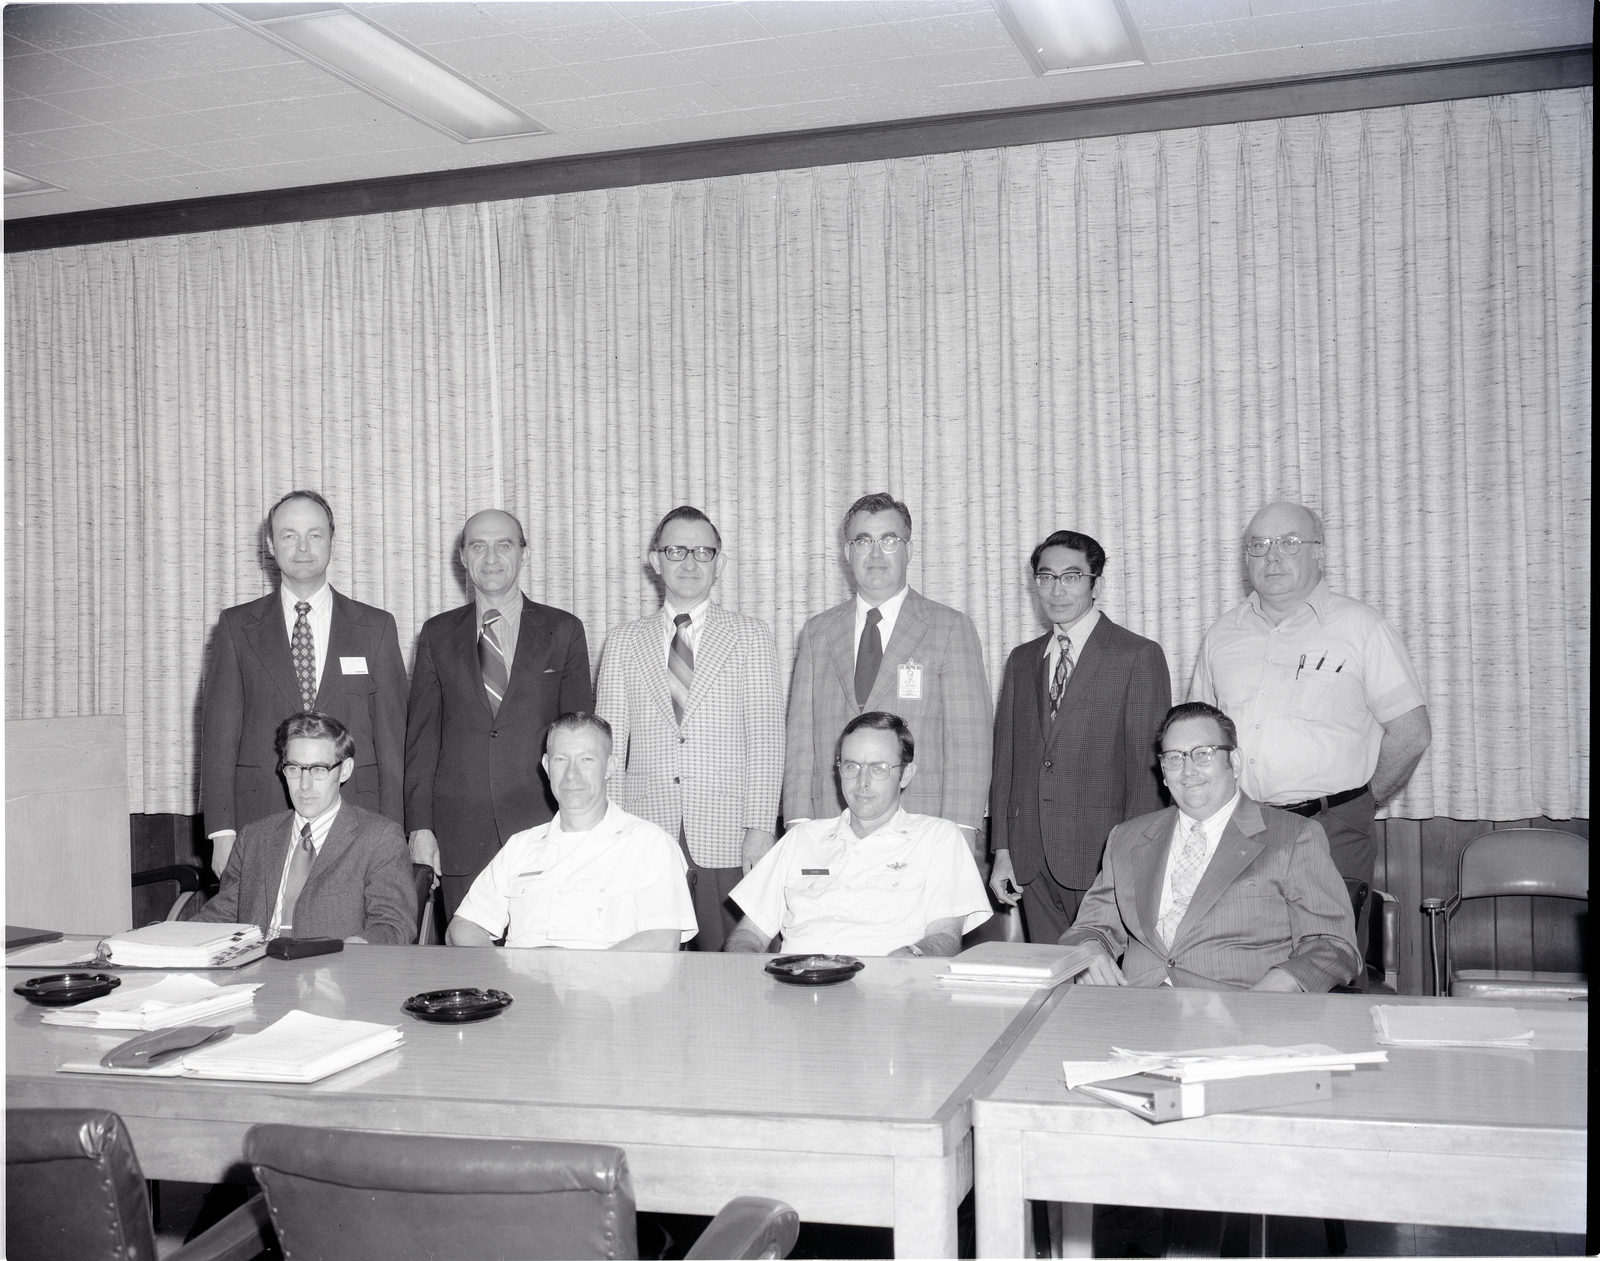 VISIT - LEFT TO RIGHT SEATED - DONALD E LAYCOCK WRIGHT